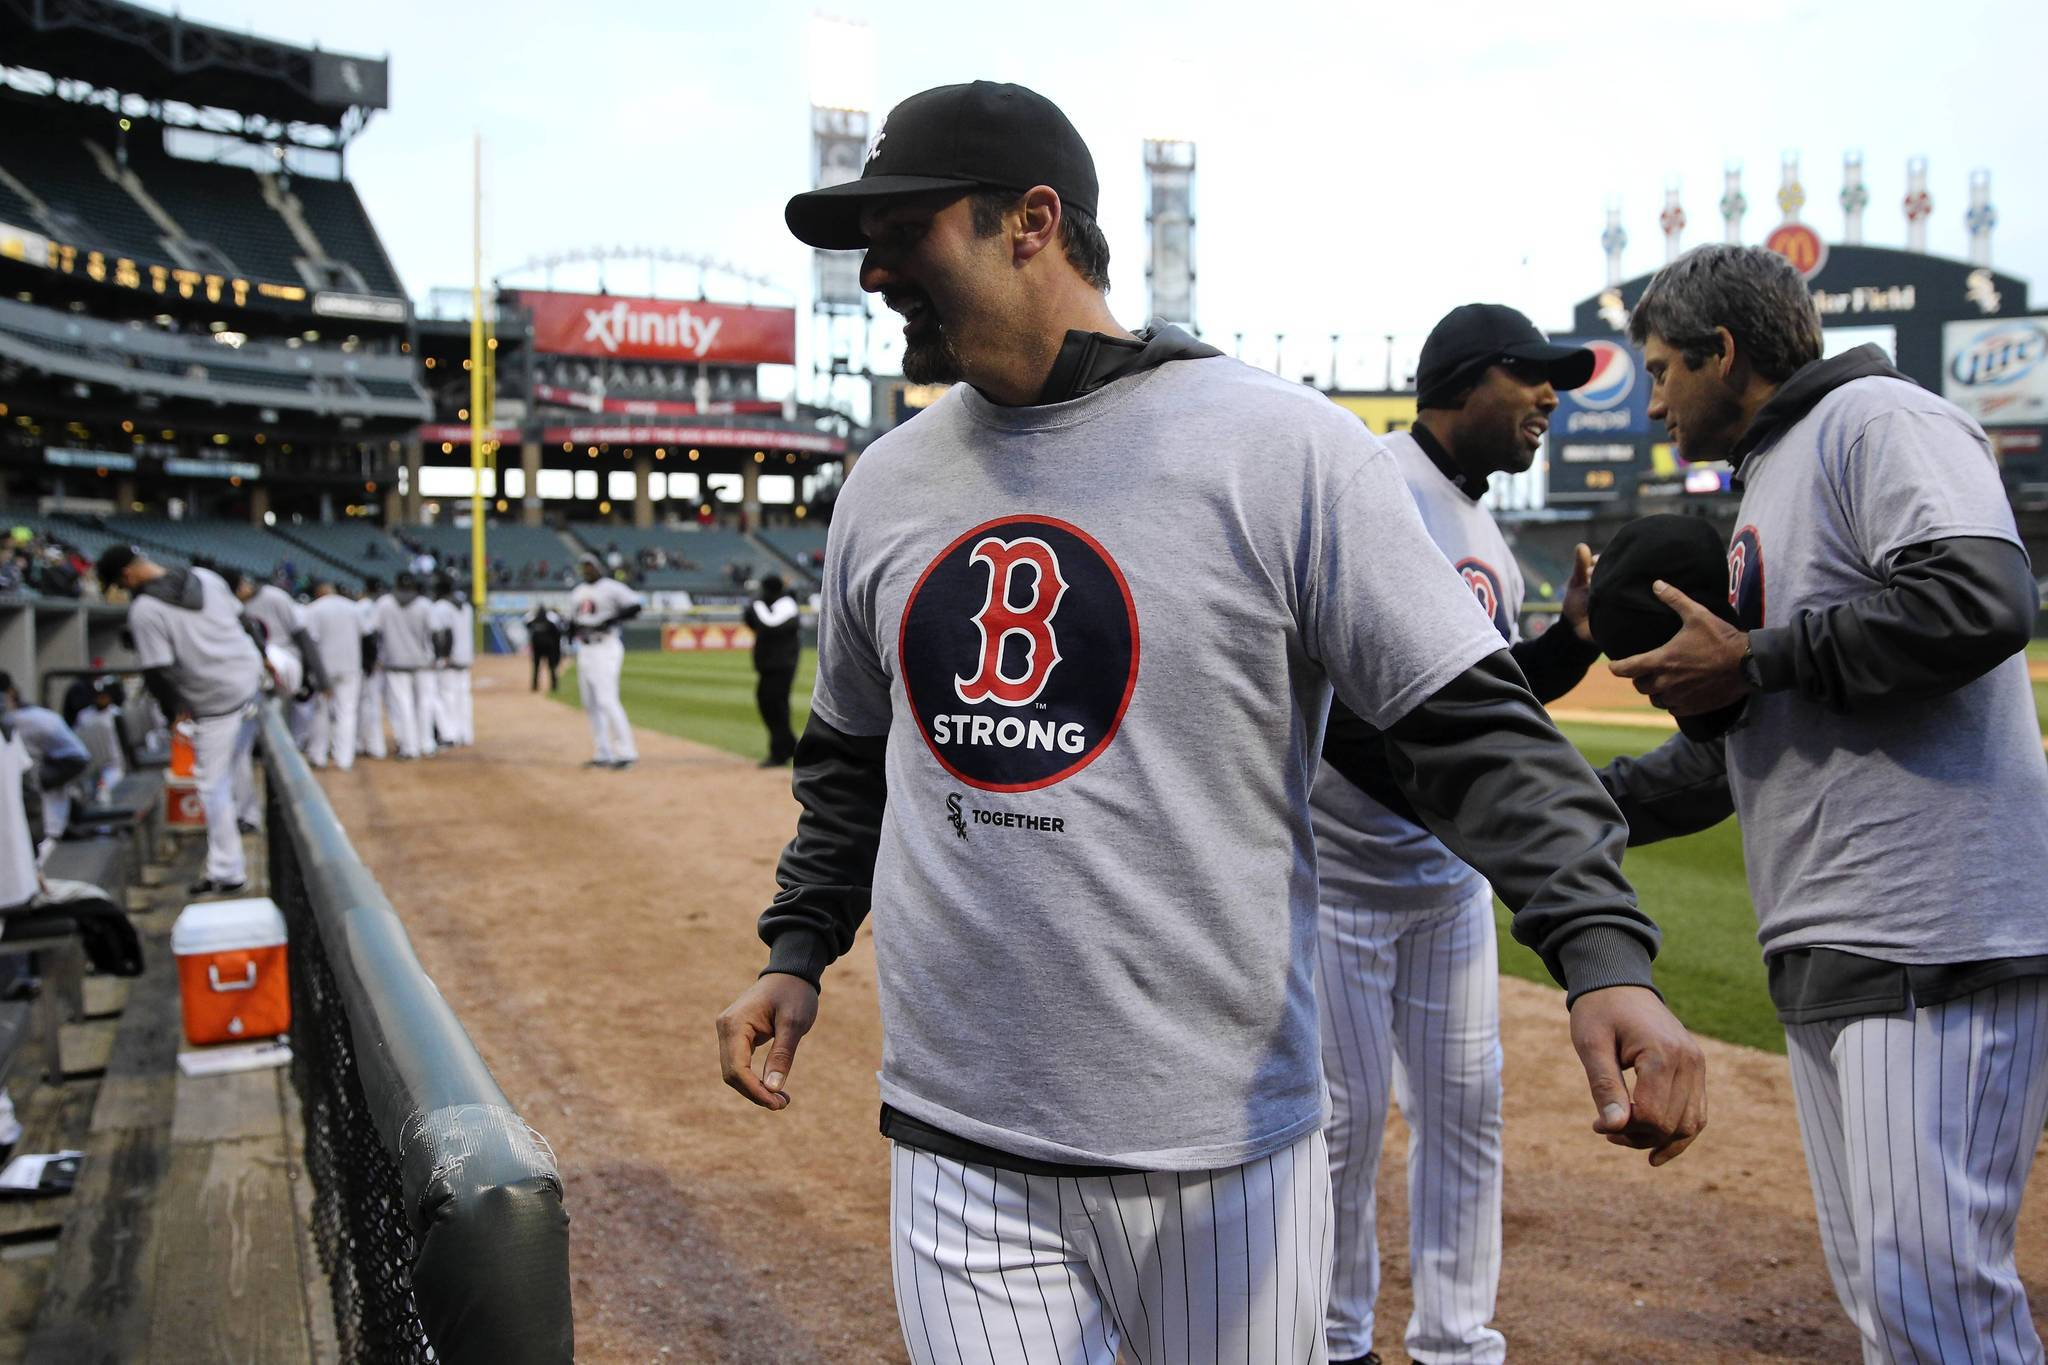 """White Sox first baseman Paul Konerko wears a """"Boston Strong"""" T-shirt along with his teammates before a game against the Red Sox on Tuesday at U.S. Cellular Field."""